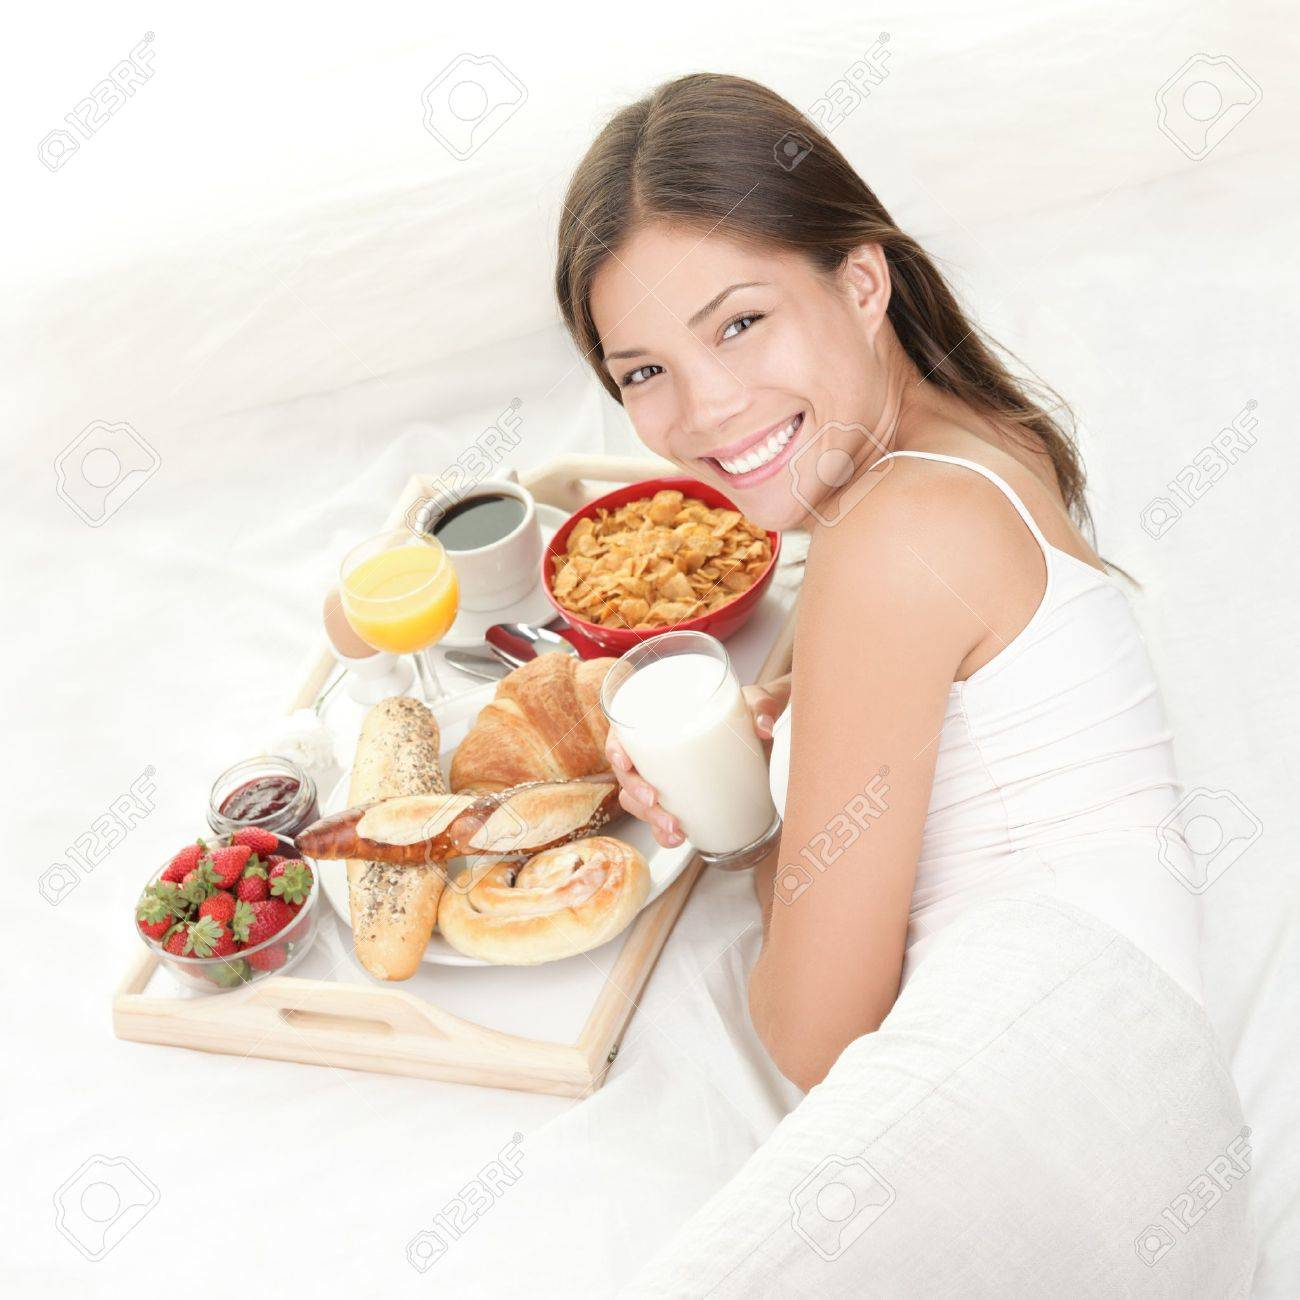 Breakfast in bed. Young woman eating breakfast in bed drinking milk. Beautiful young woman smiling. Stock Photo - 7780060